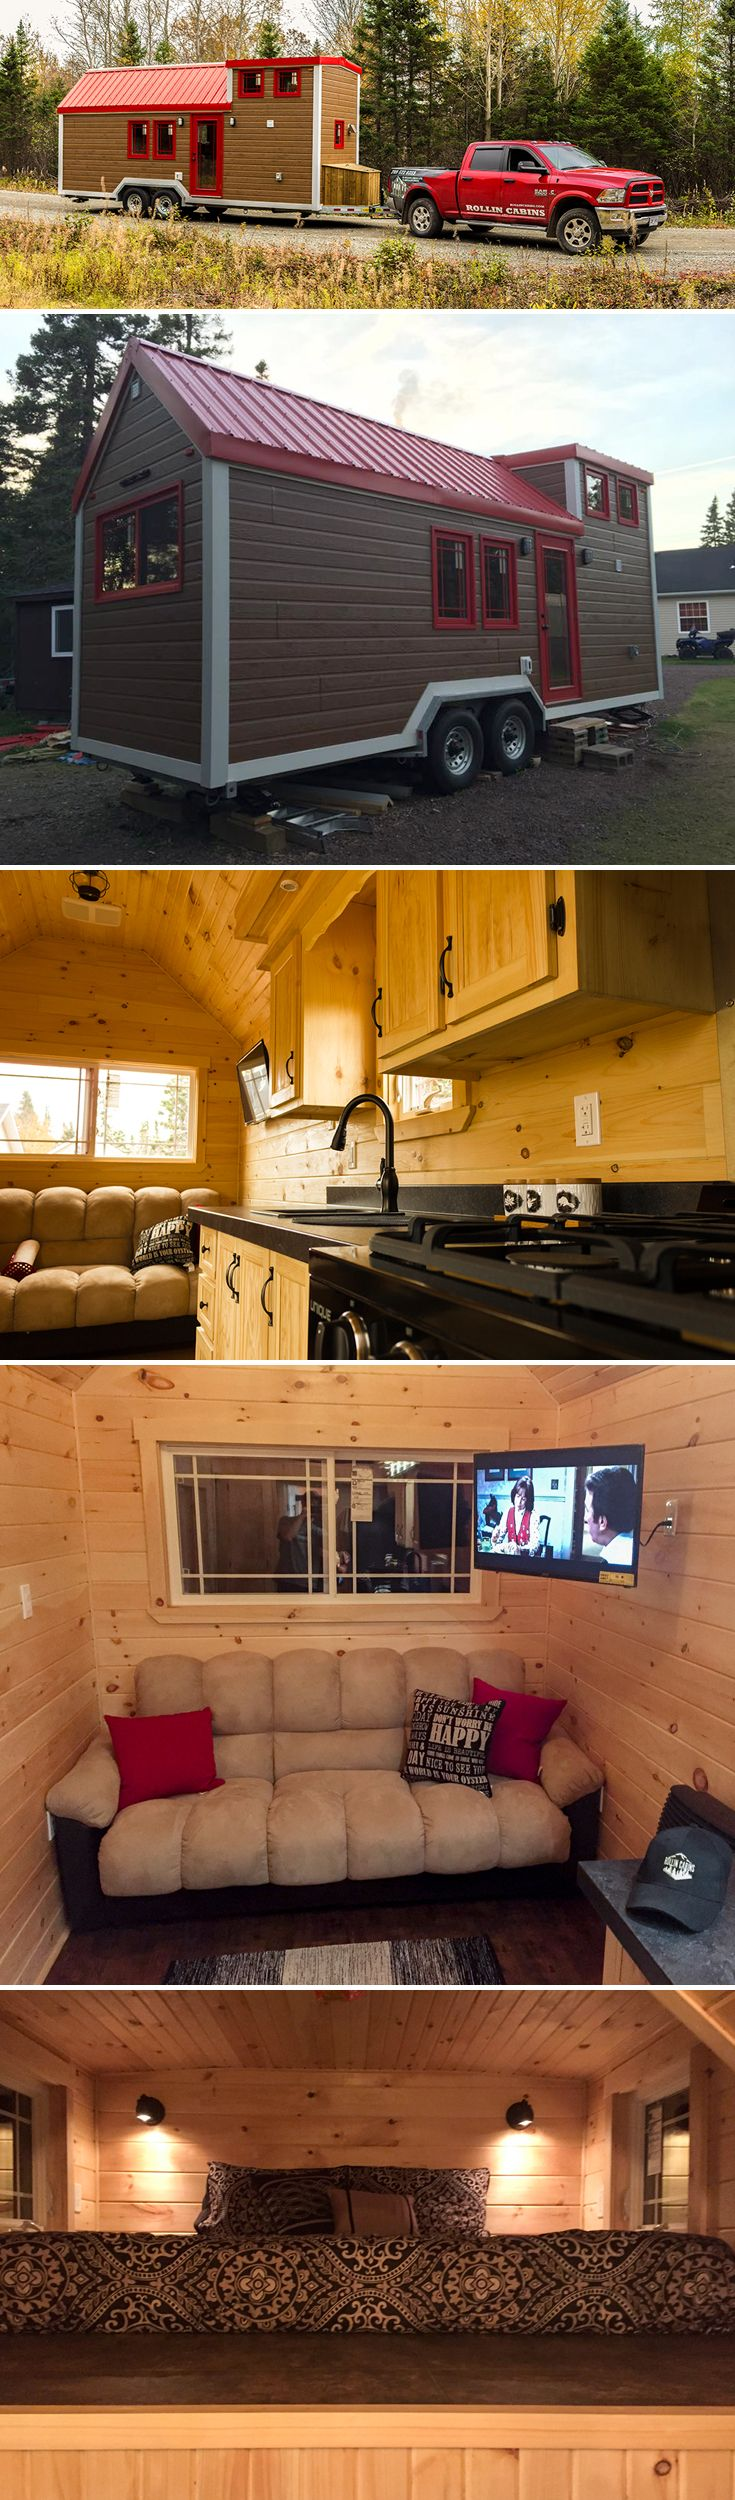 A 210 sq.ft. tiny house on wheels built on a 24' trailer. Nine opening windows allow for plenty of natural light. Insulated for Canadian winters.